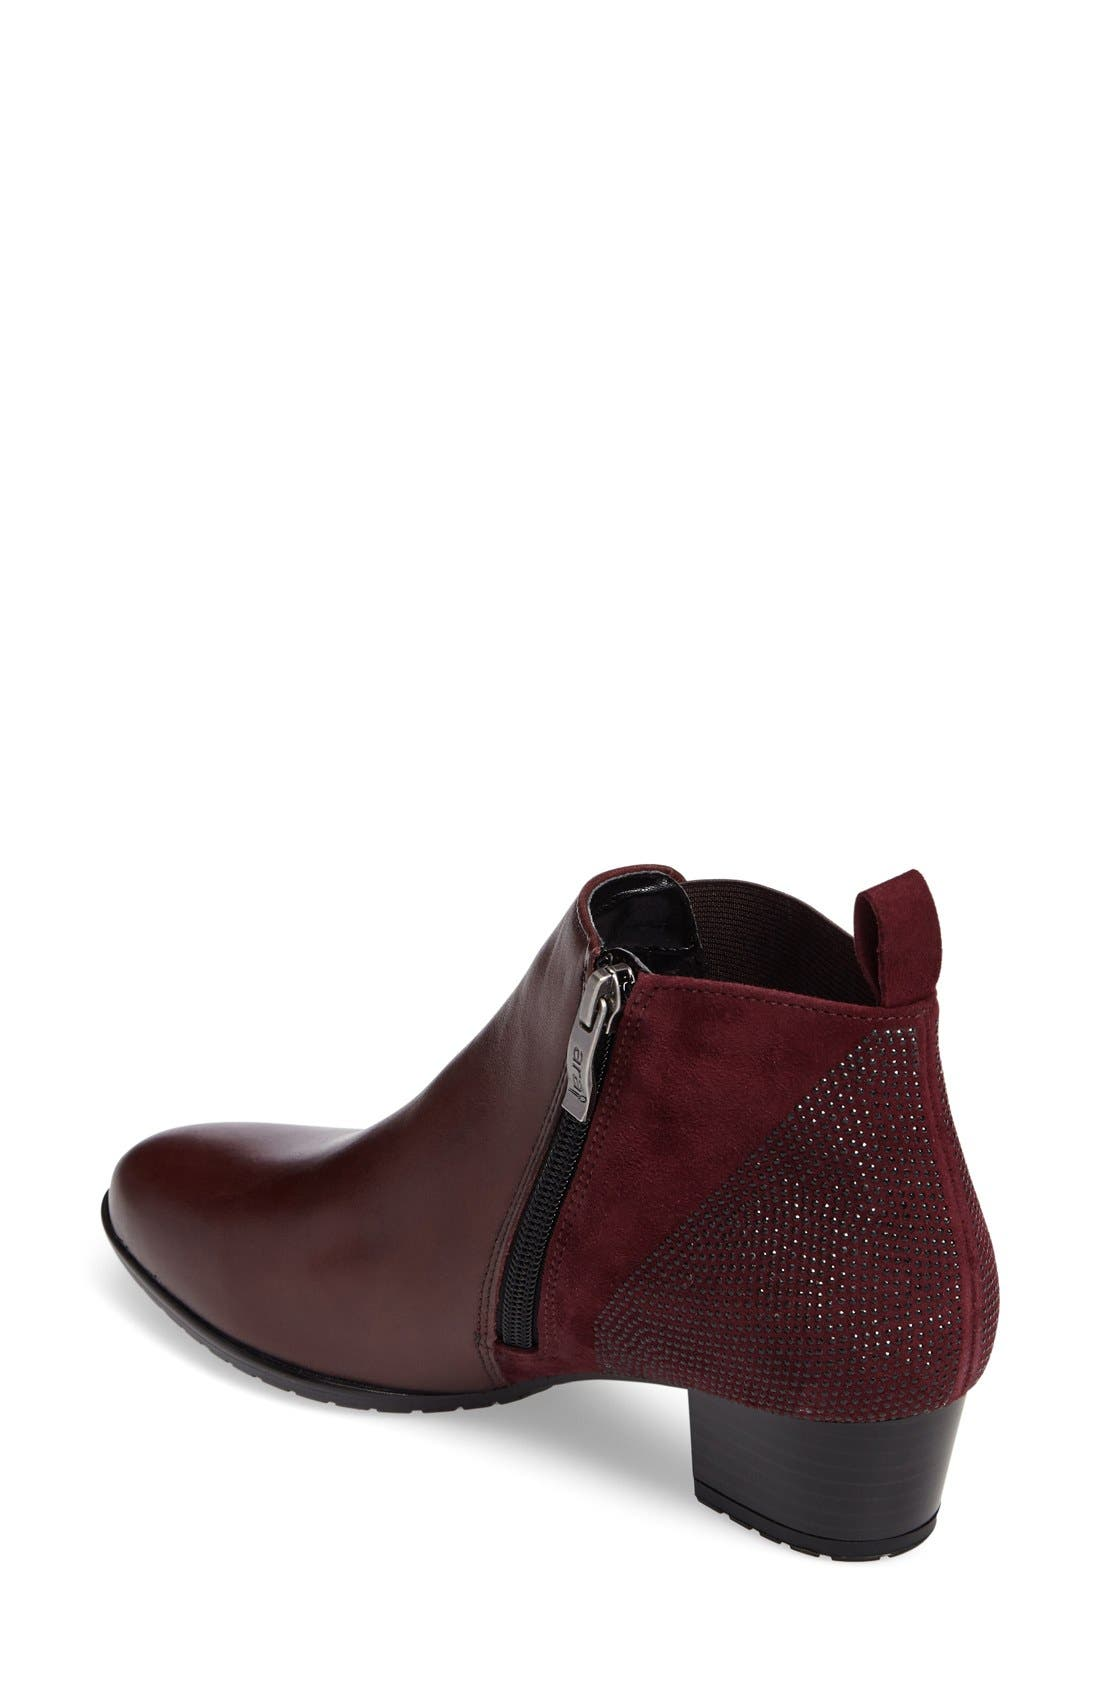 'Patty' Block Heel Boot,                             Alternate thumbnail 6, color,                             BURGUNDY LEATHER